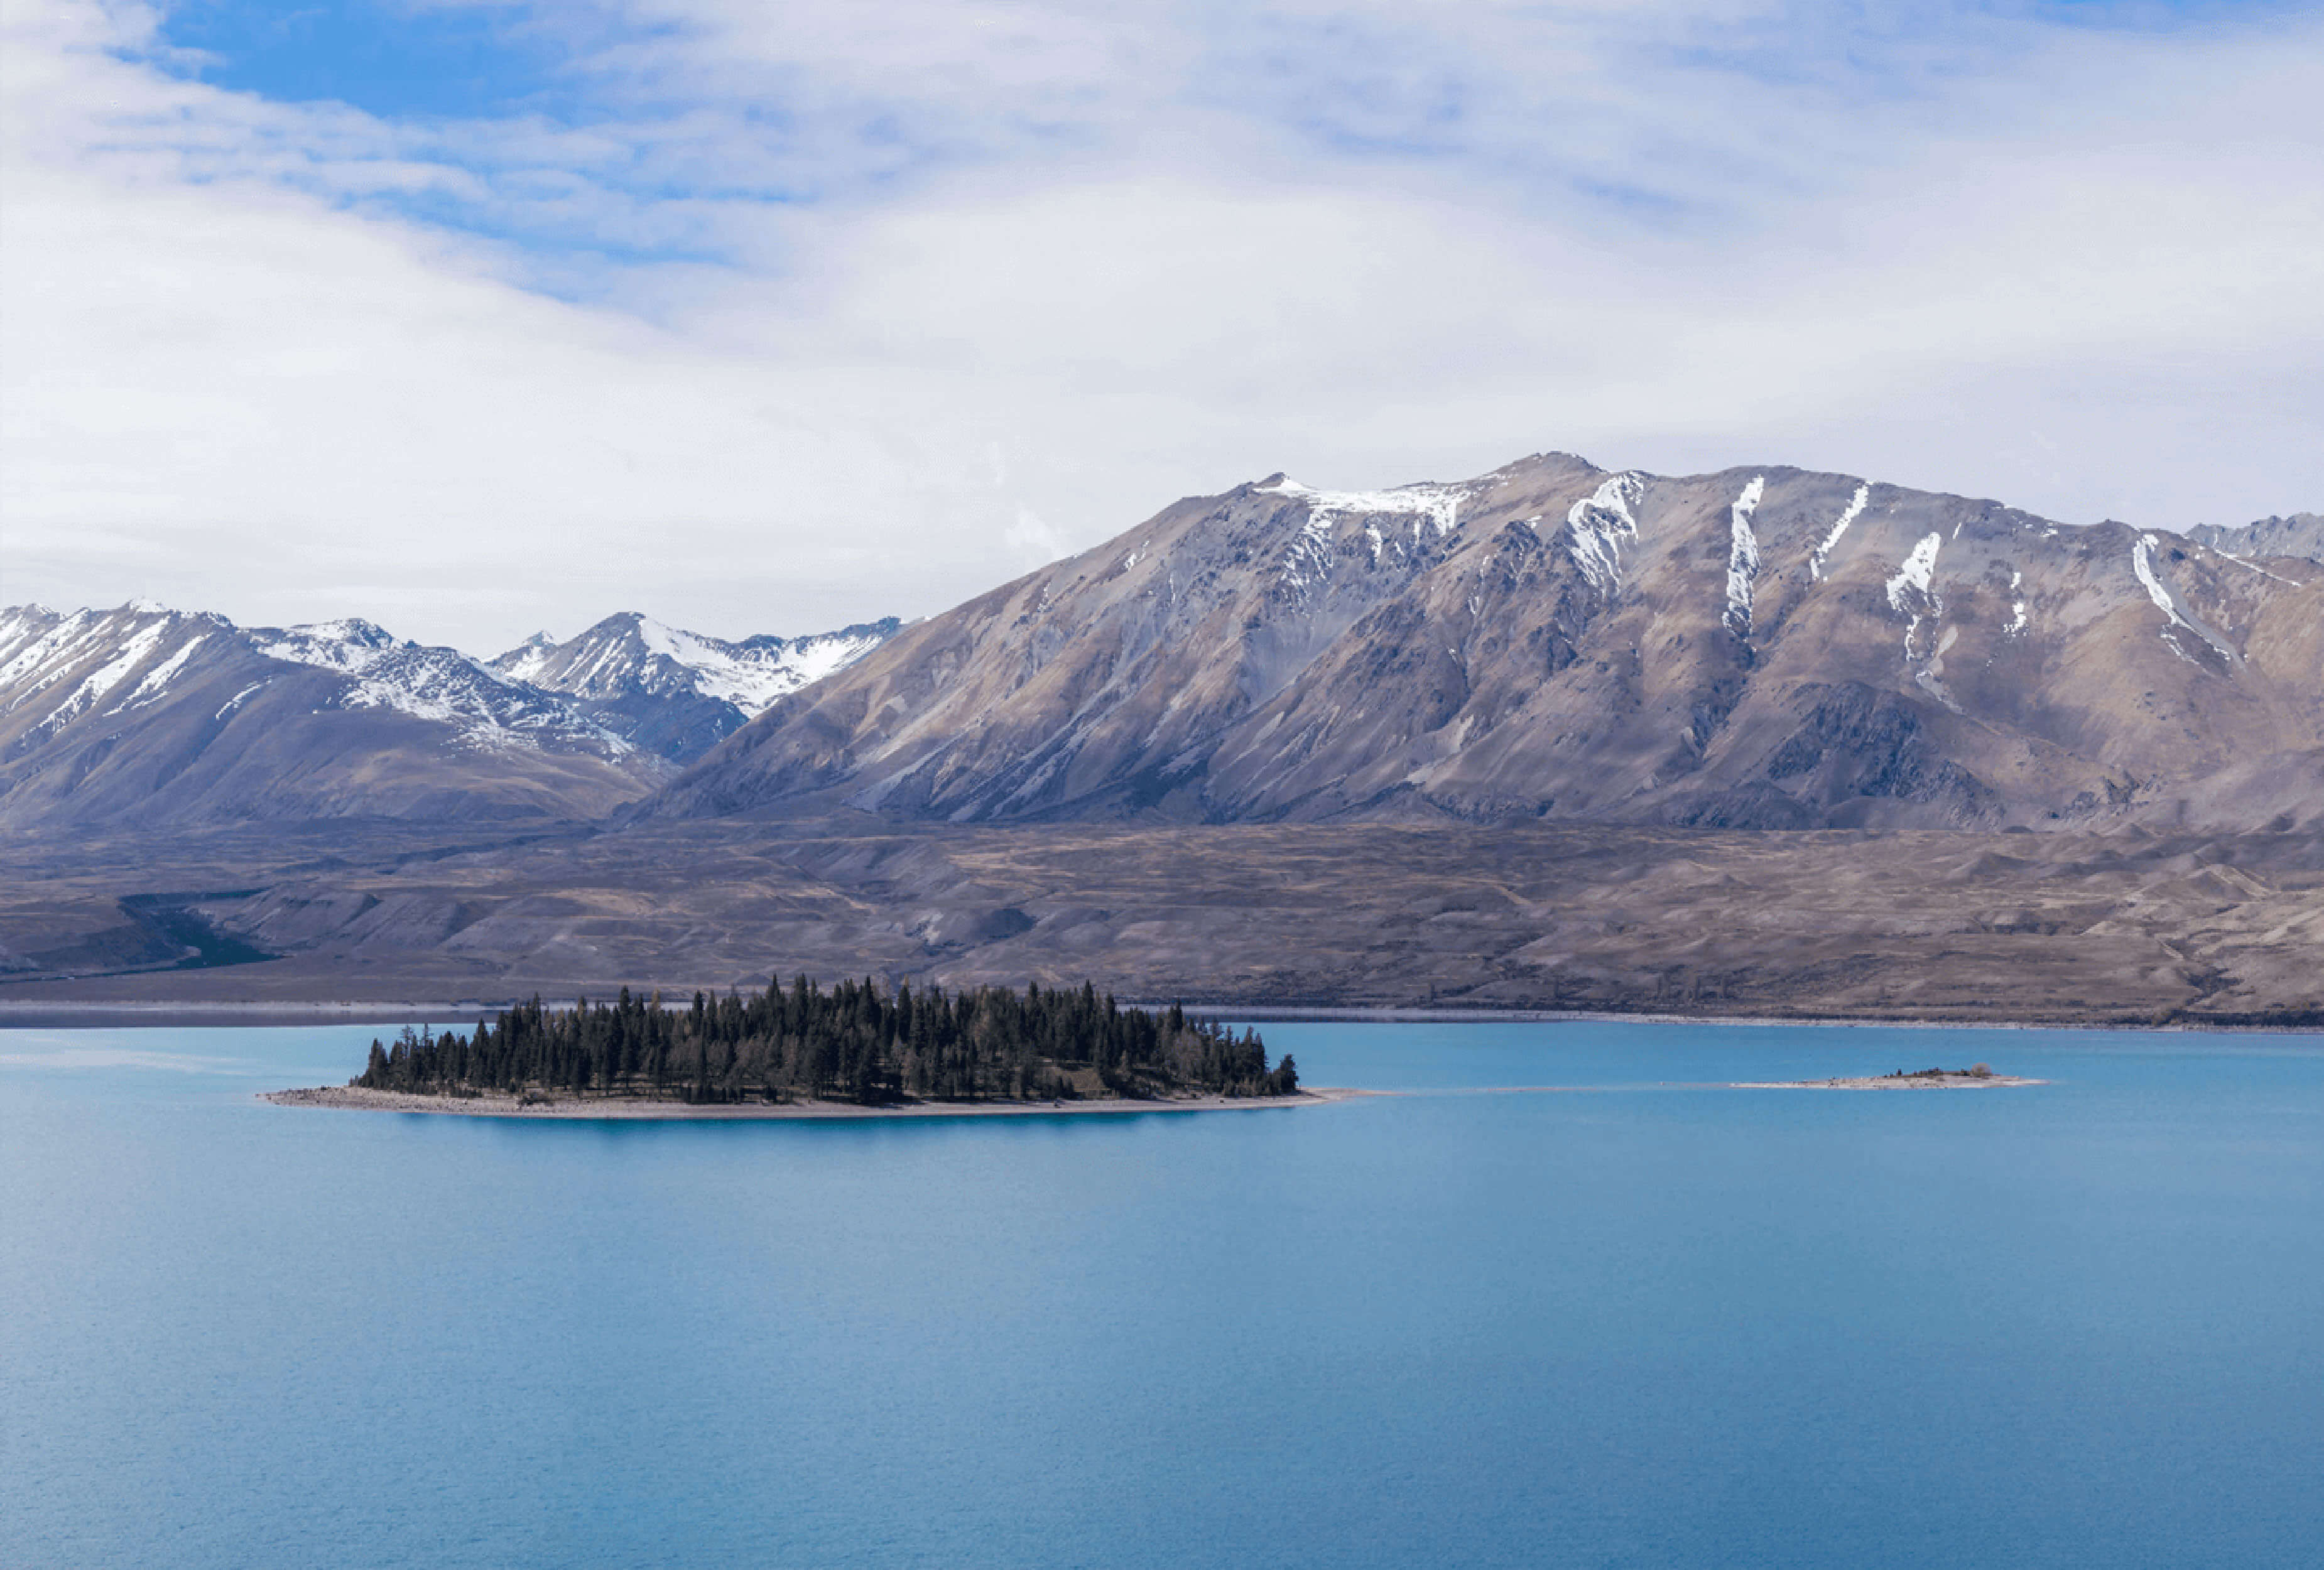 Image of Matariki Island covered with pine trees in the middle of Lake Tekapo with mountains in background